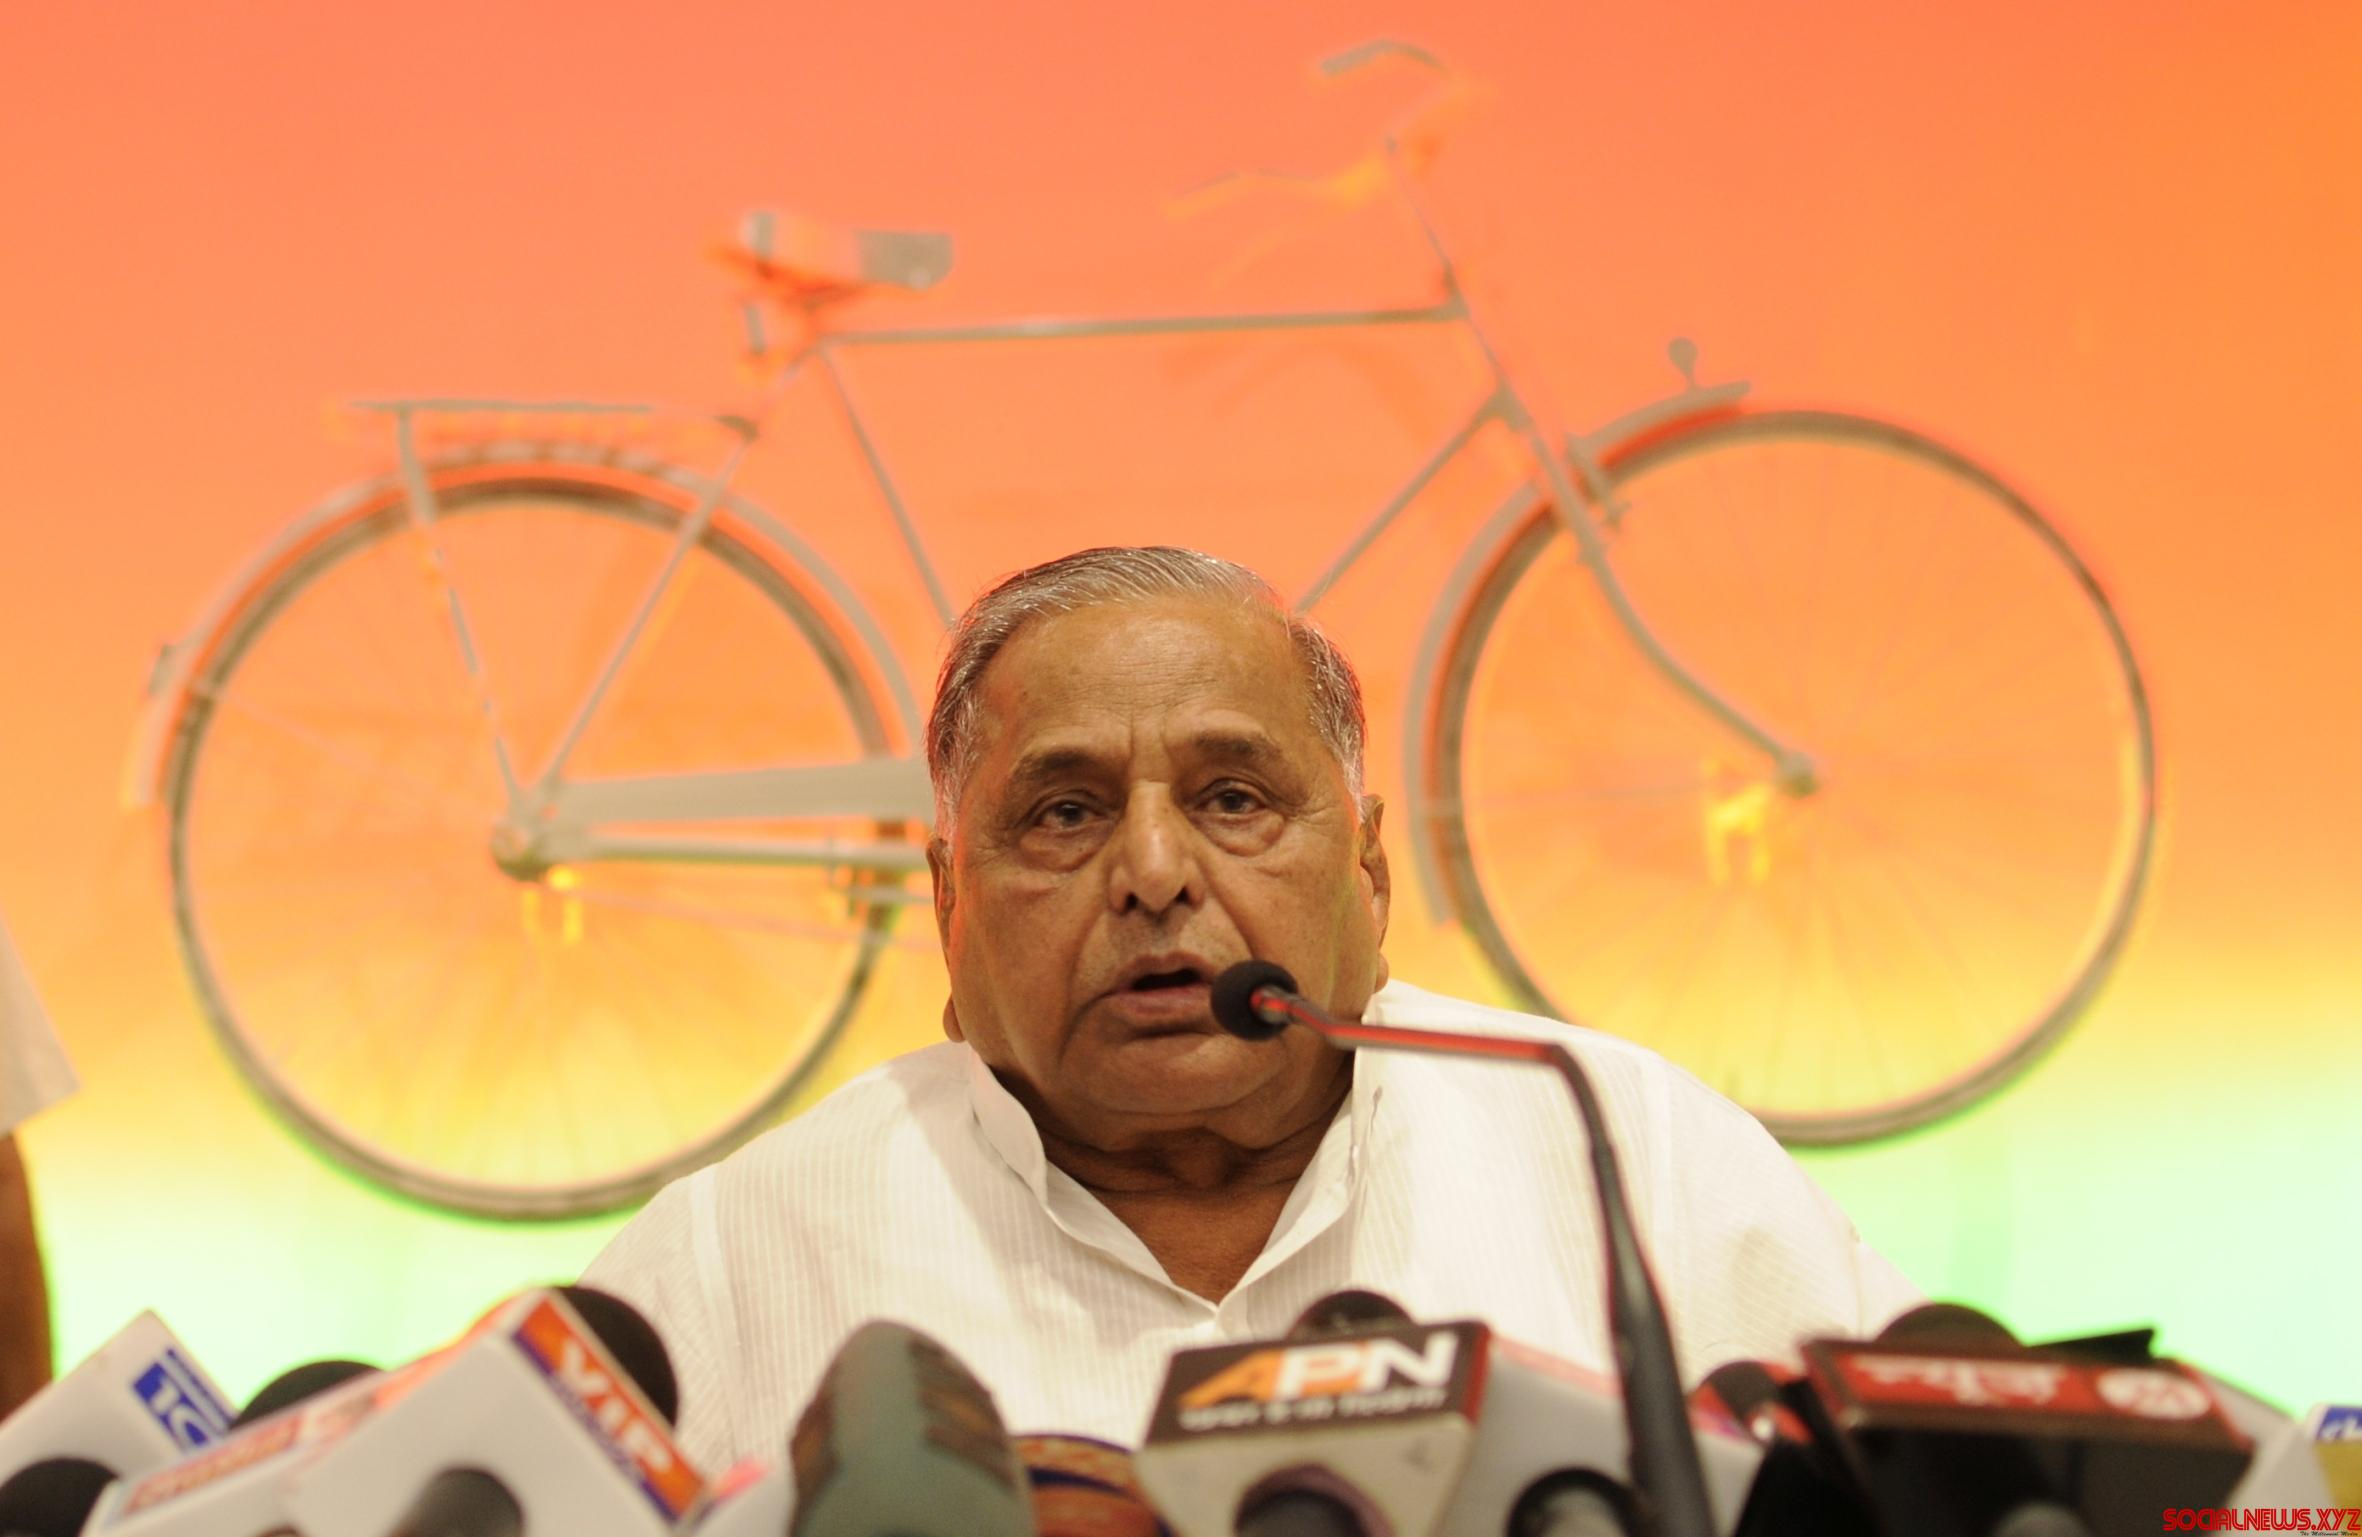 Won't form new party, nor change symbol: Mulayam